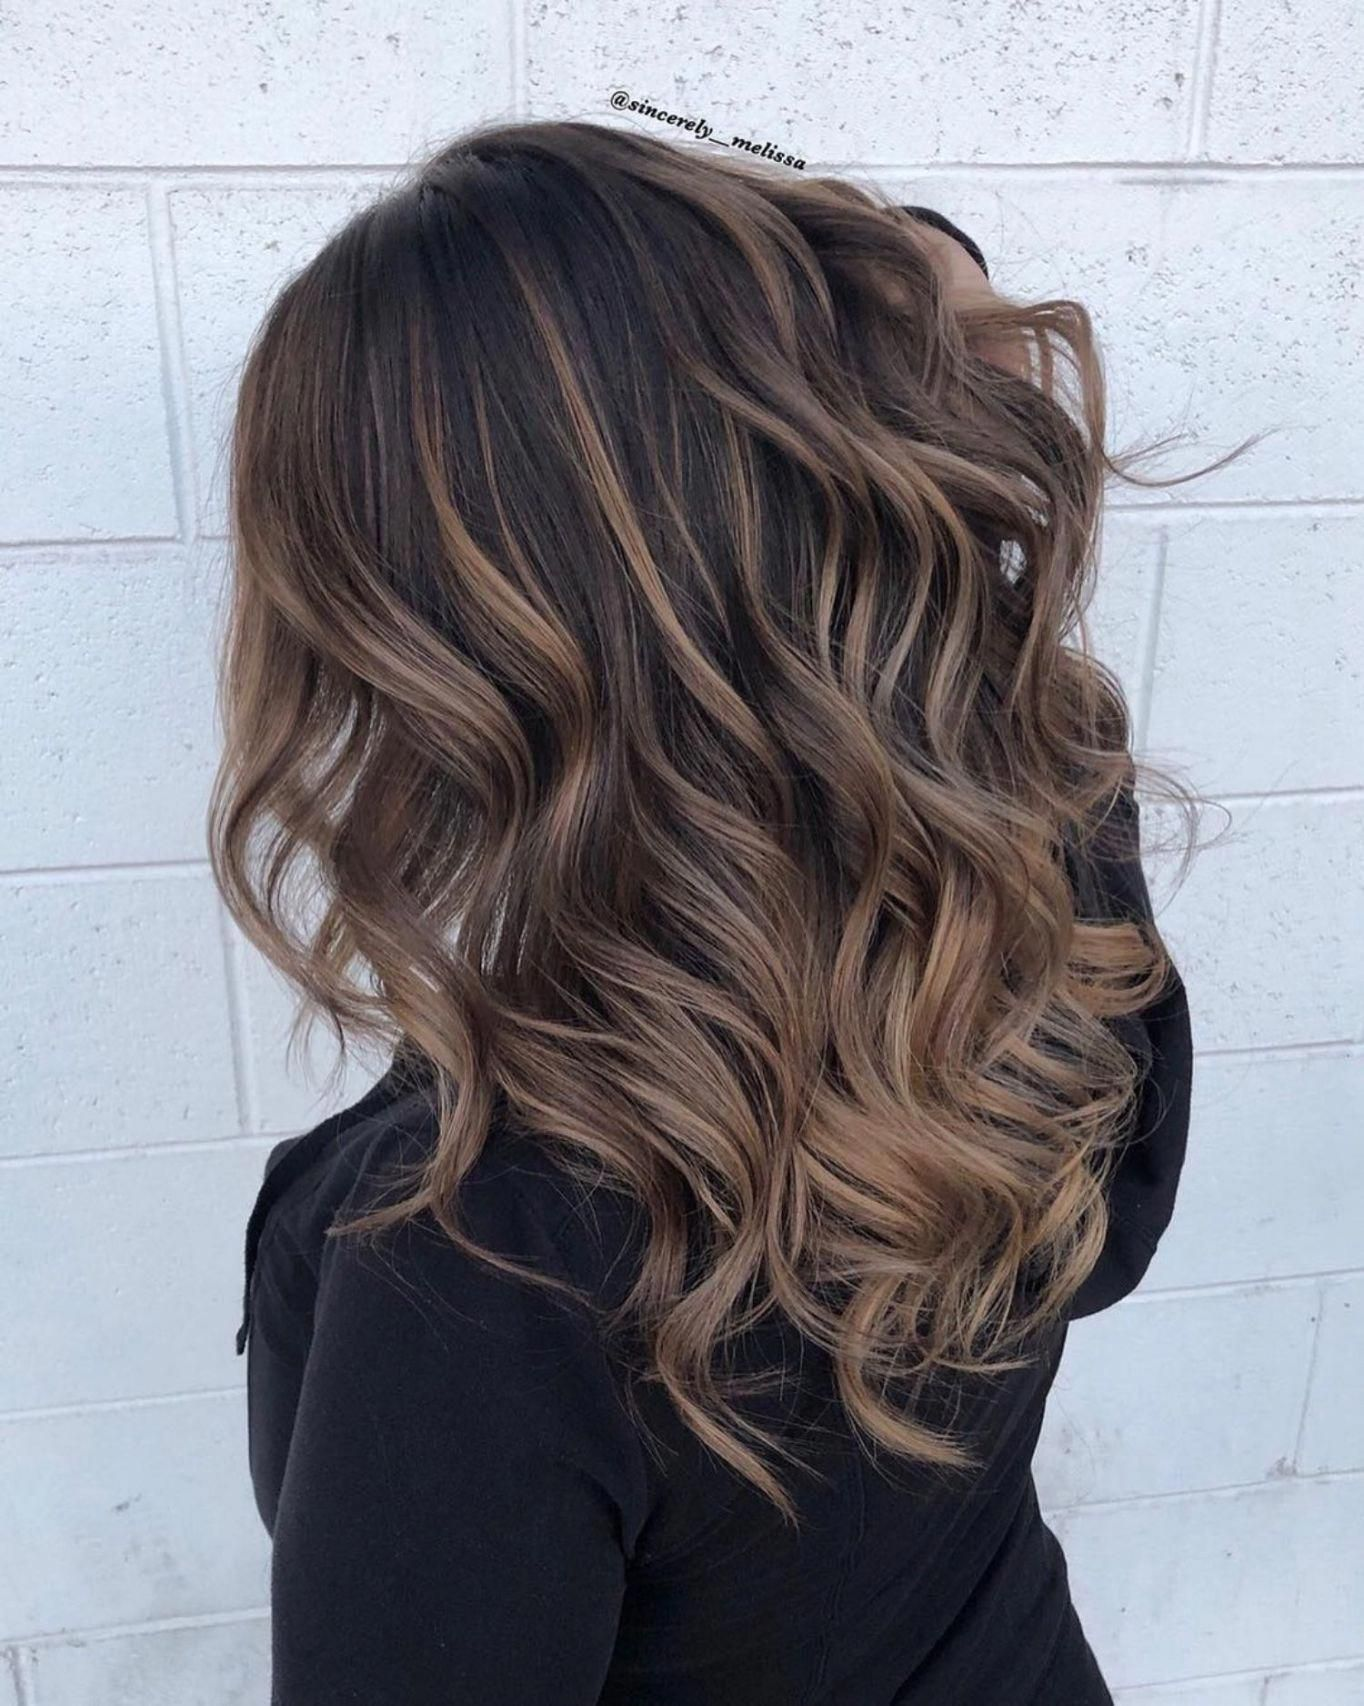 60 Hairstyles Featuring Dark Brown Hair With Highlights Dark Hair With Highlights Brown Hair With Highlights Brown Hair Balayage